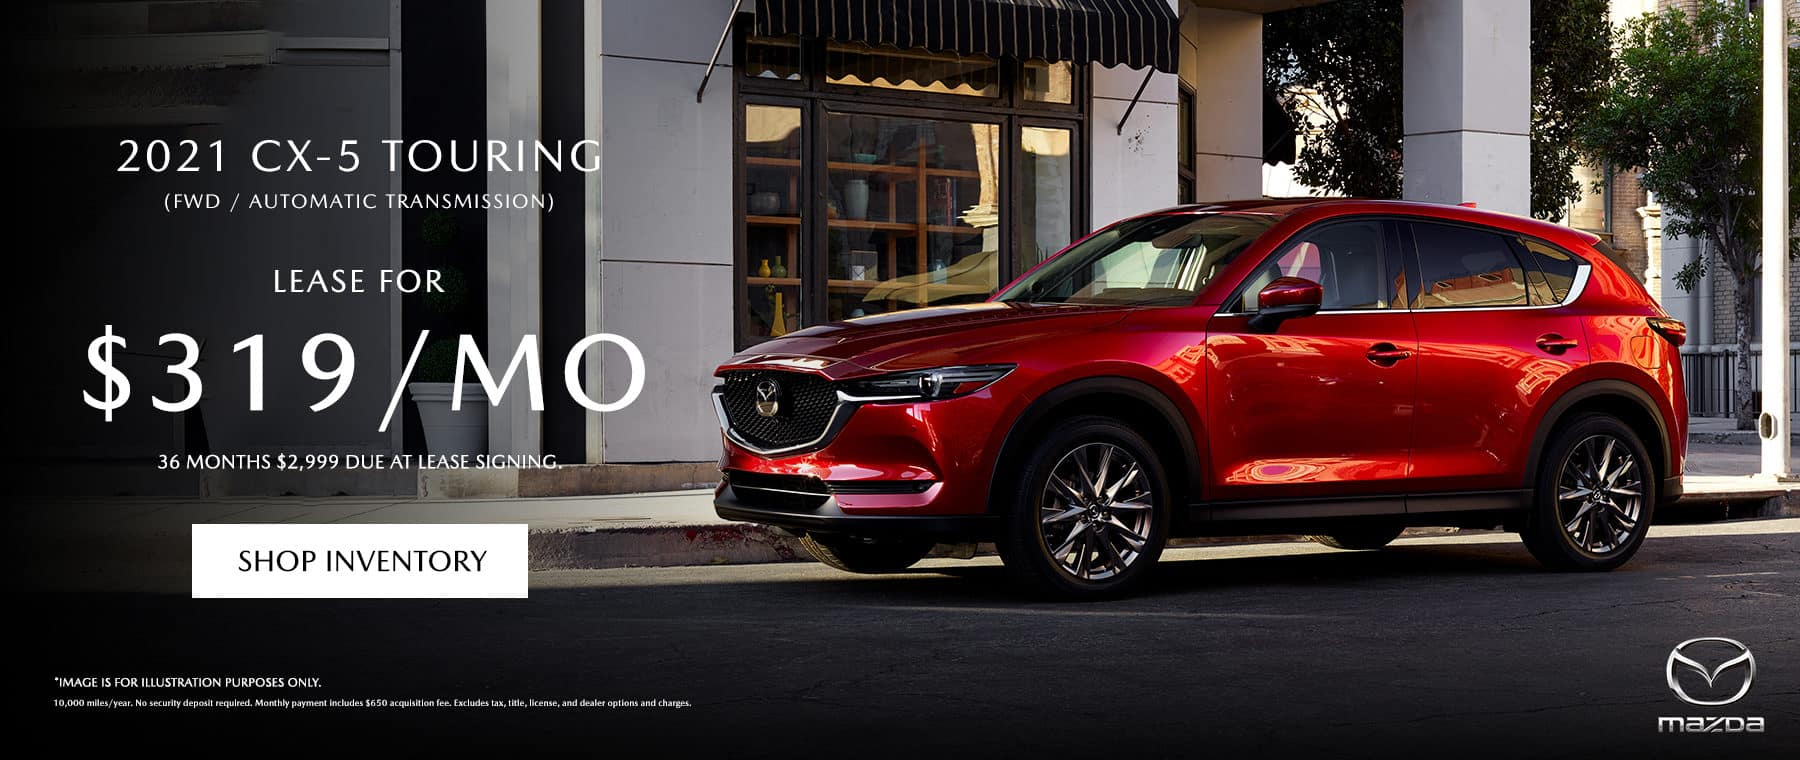 2021 CX-5 TOURING $319 a month / 36 months $2,999 due at lease signing.